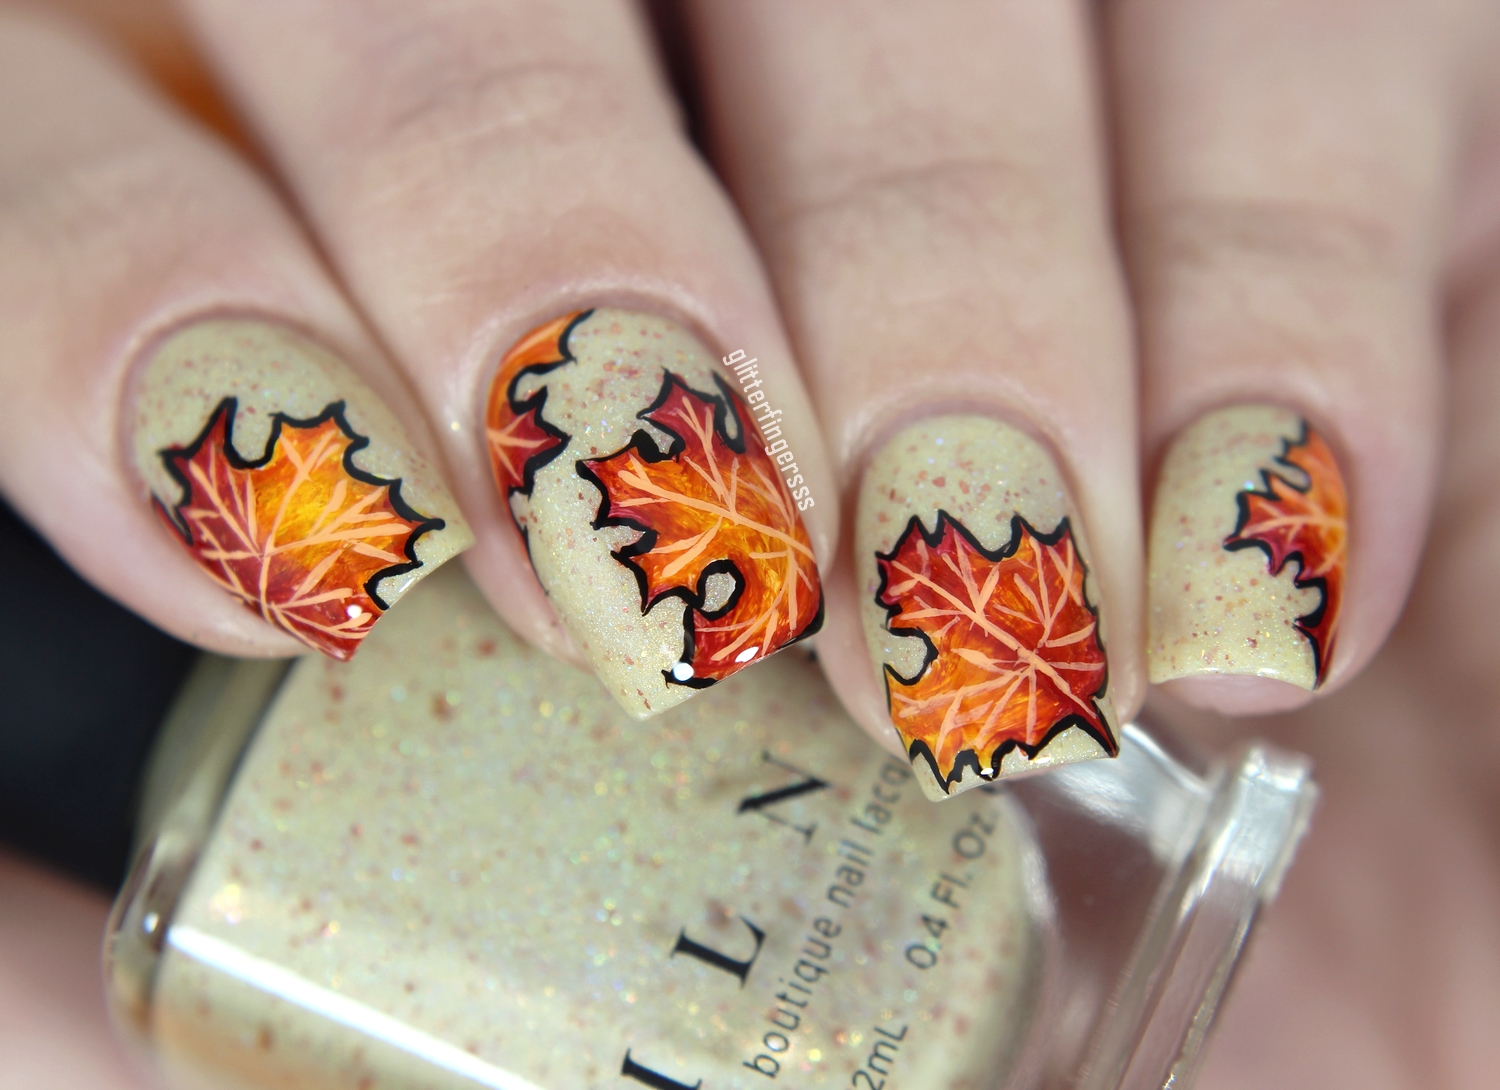 Autumn leaves ~ Glitterfingersss in english